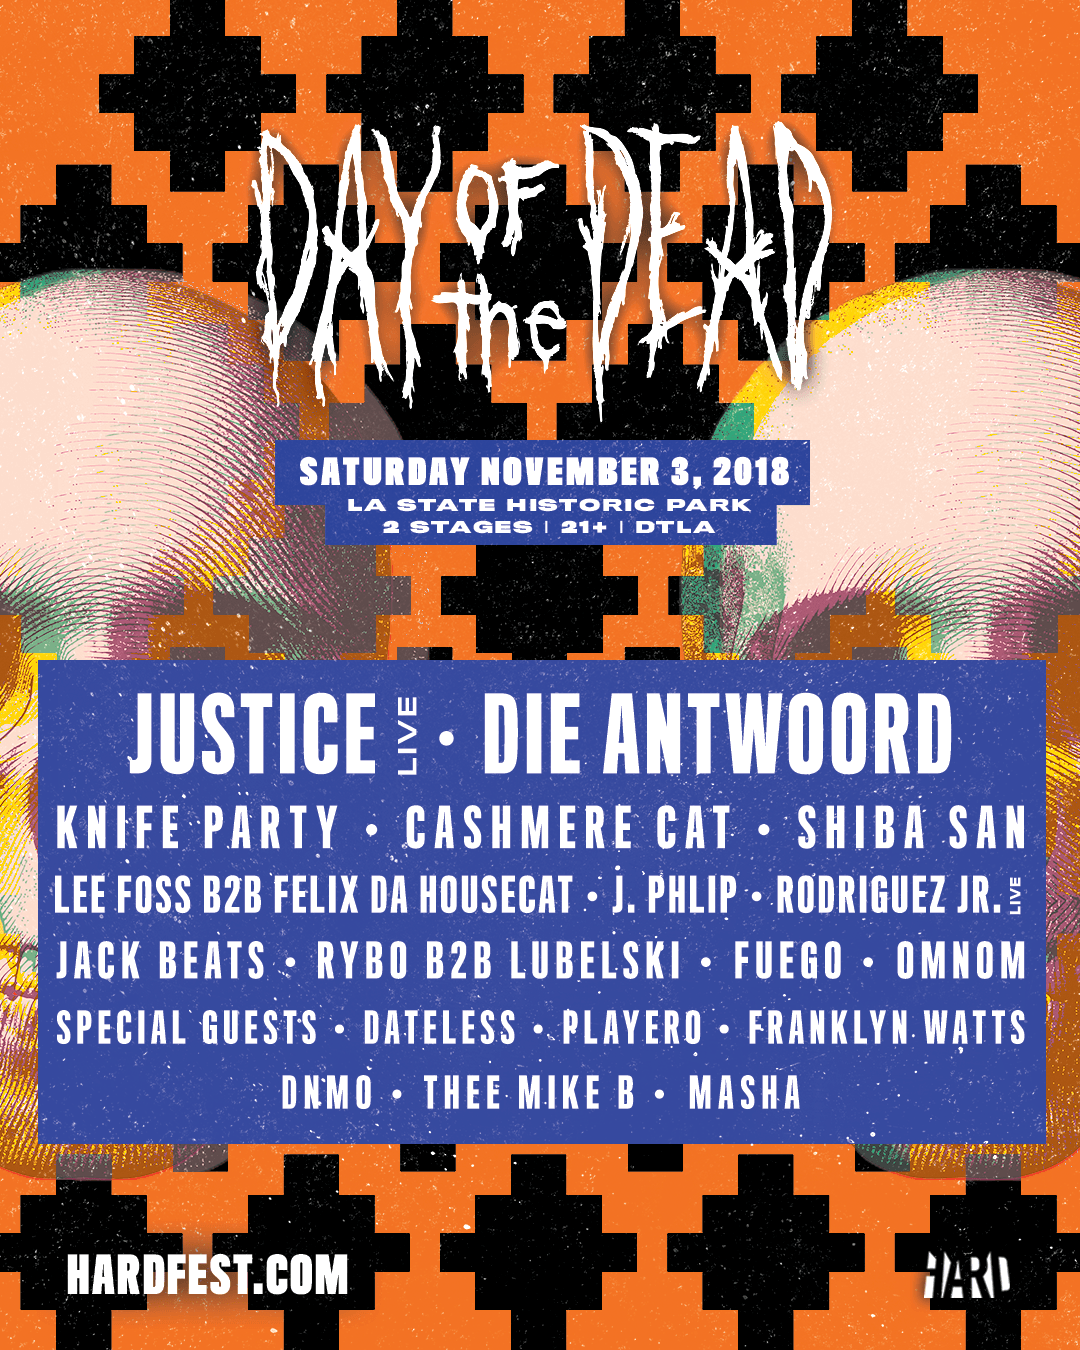 hard_day_of_the_dead_2018_lu_social_asset_1080x1350_r02Final-compressor Justice y Die Antwoord encabezan el renacimiento de HARD Day of the Dead